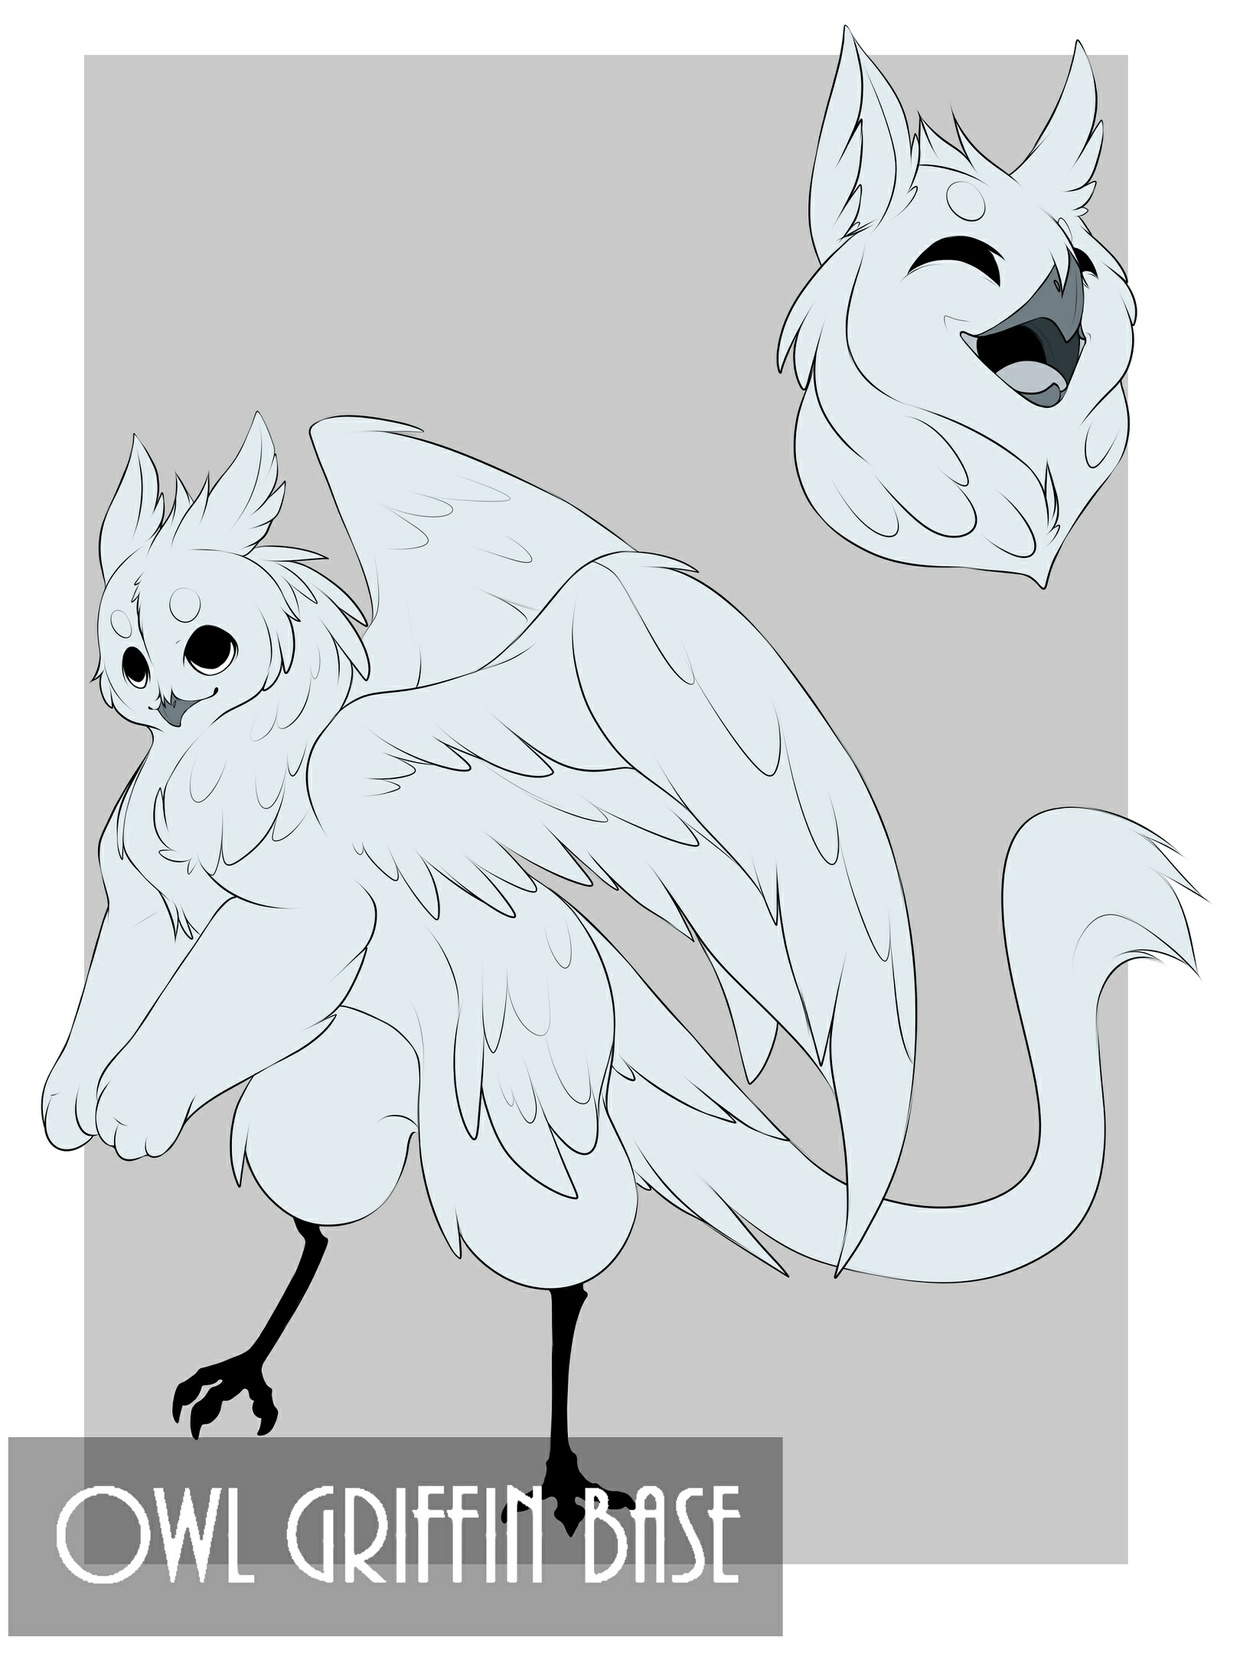 Owl Griffin Base